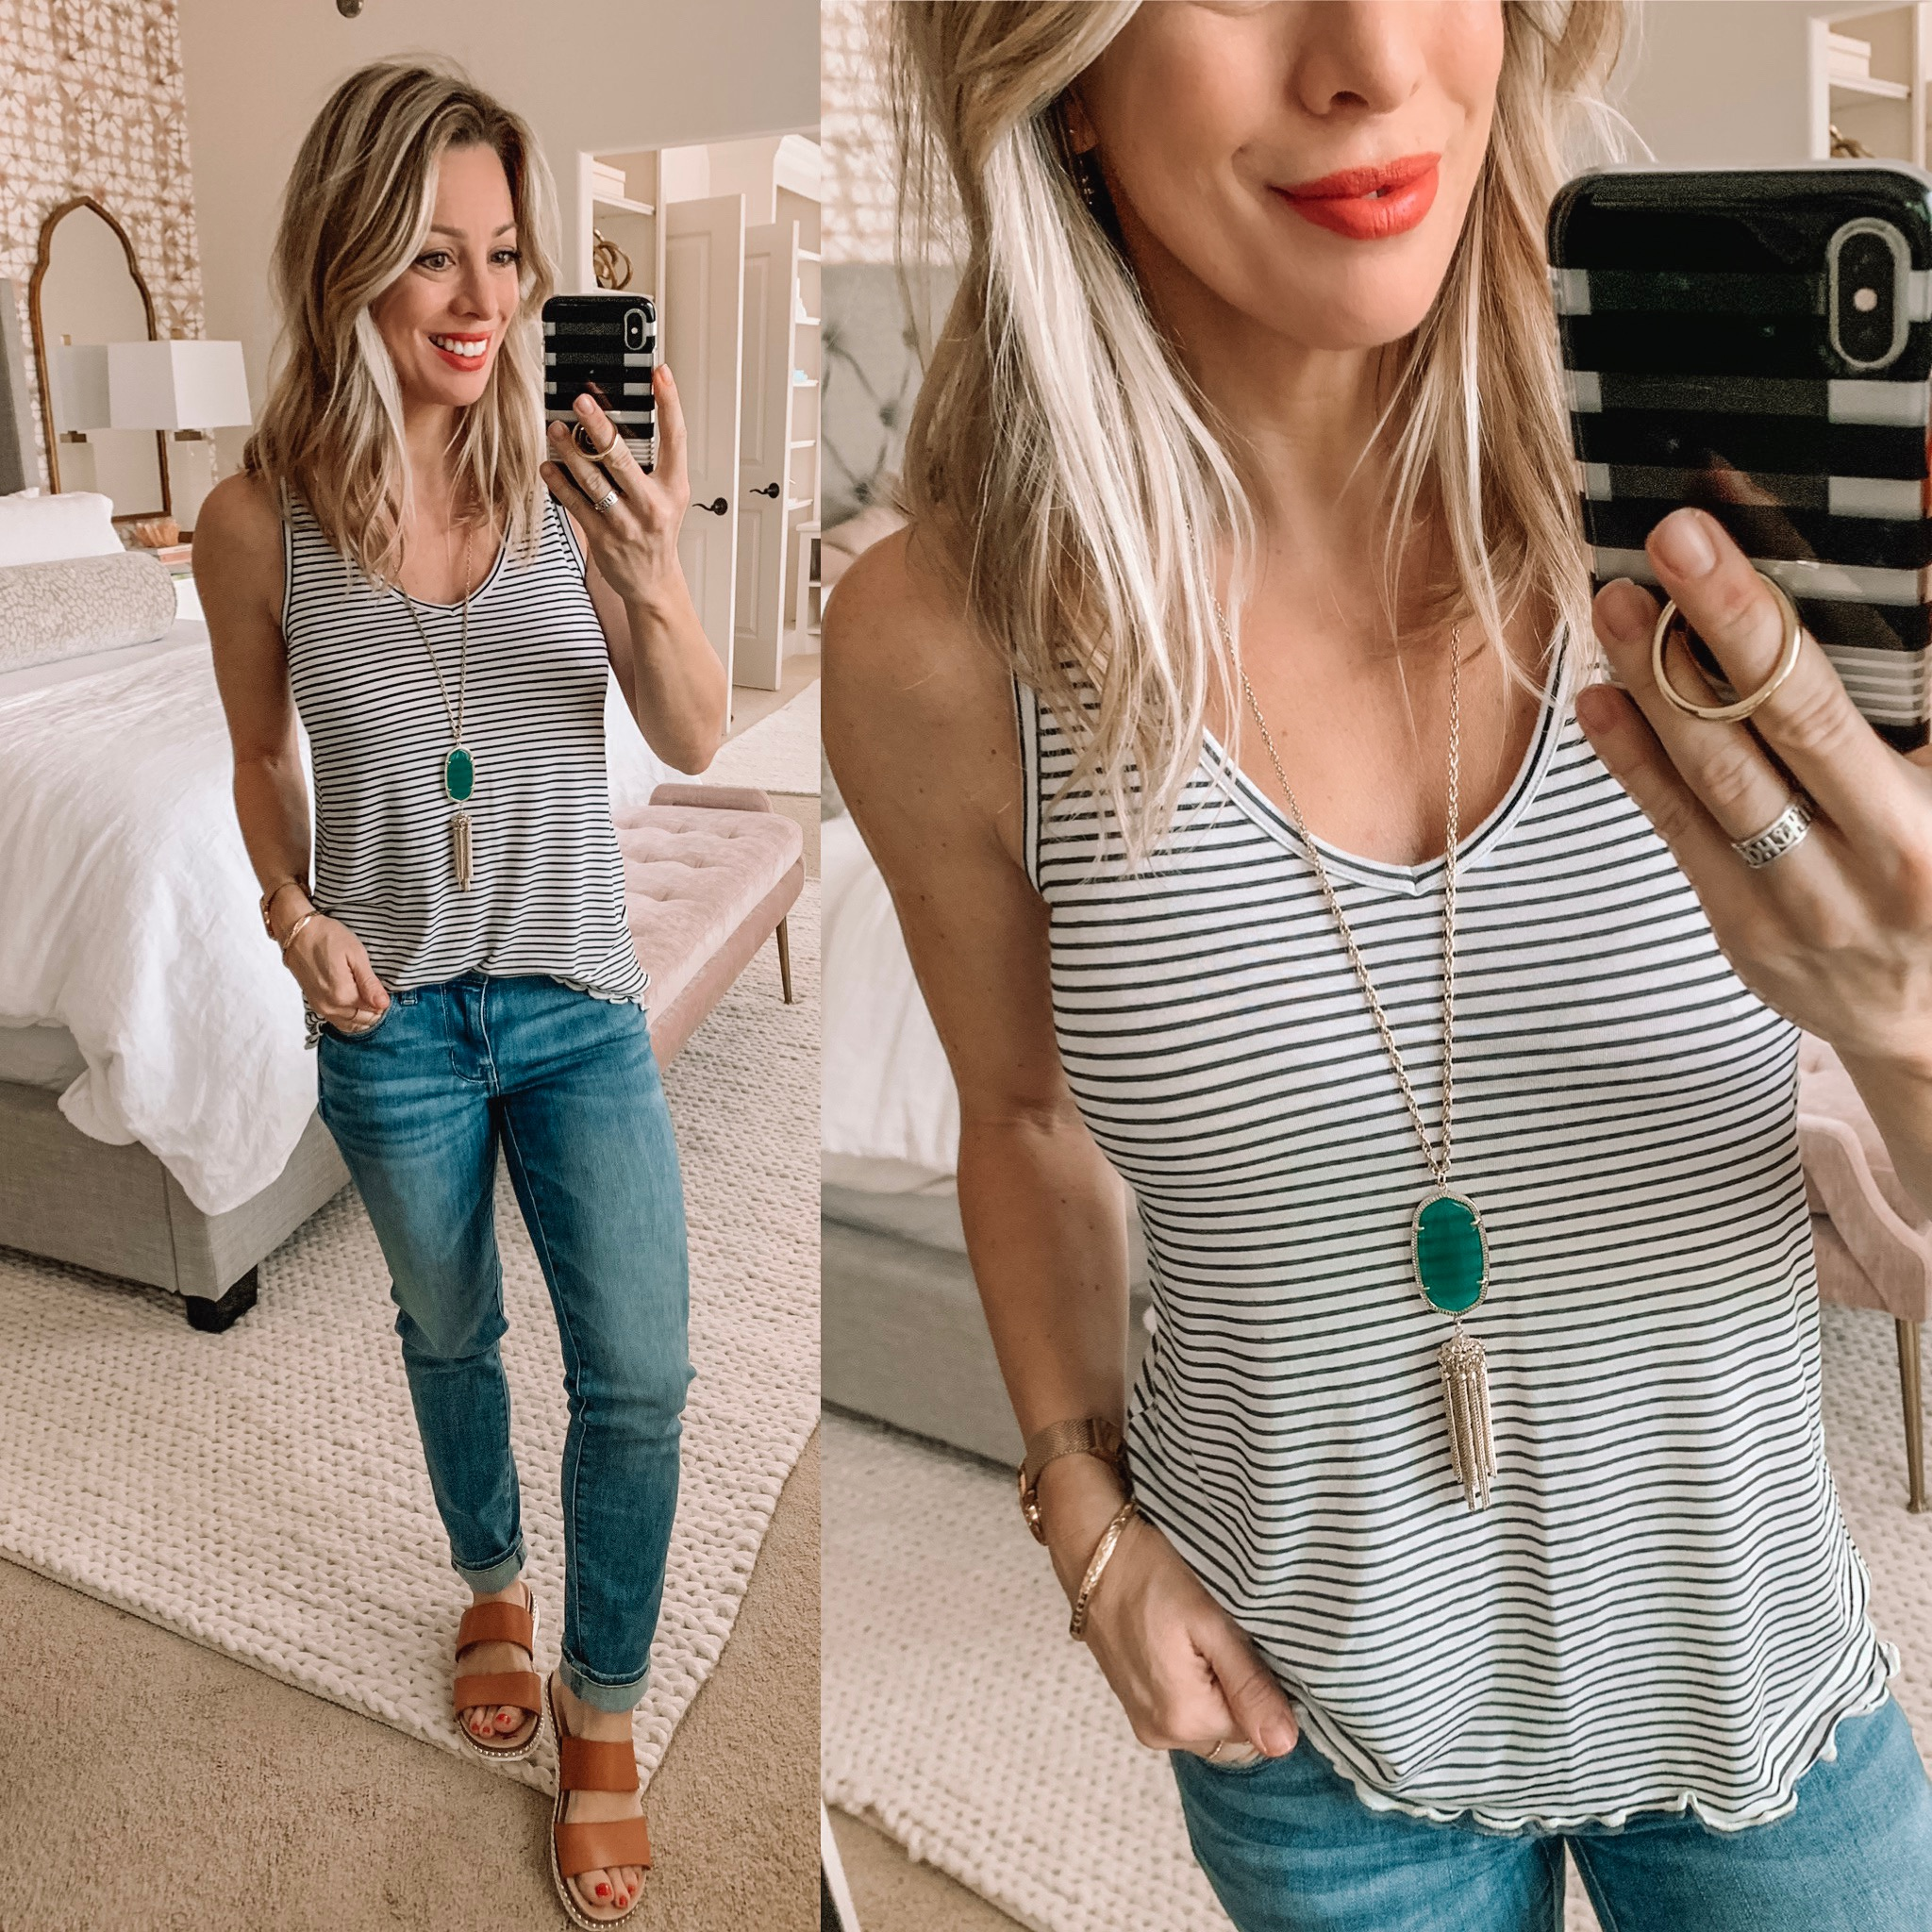 Stripe tank skinny jeans and sandals